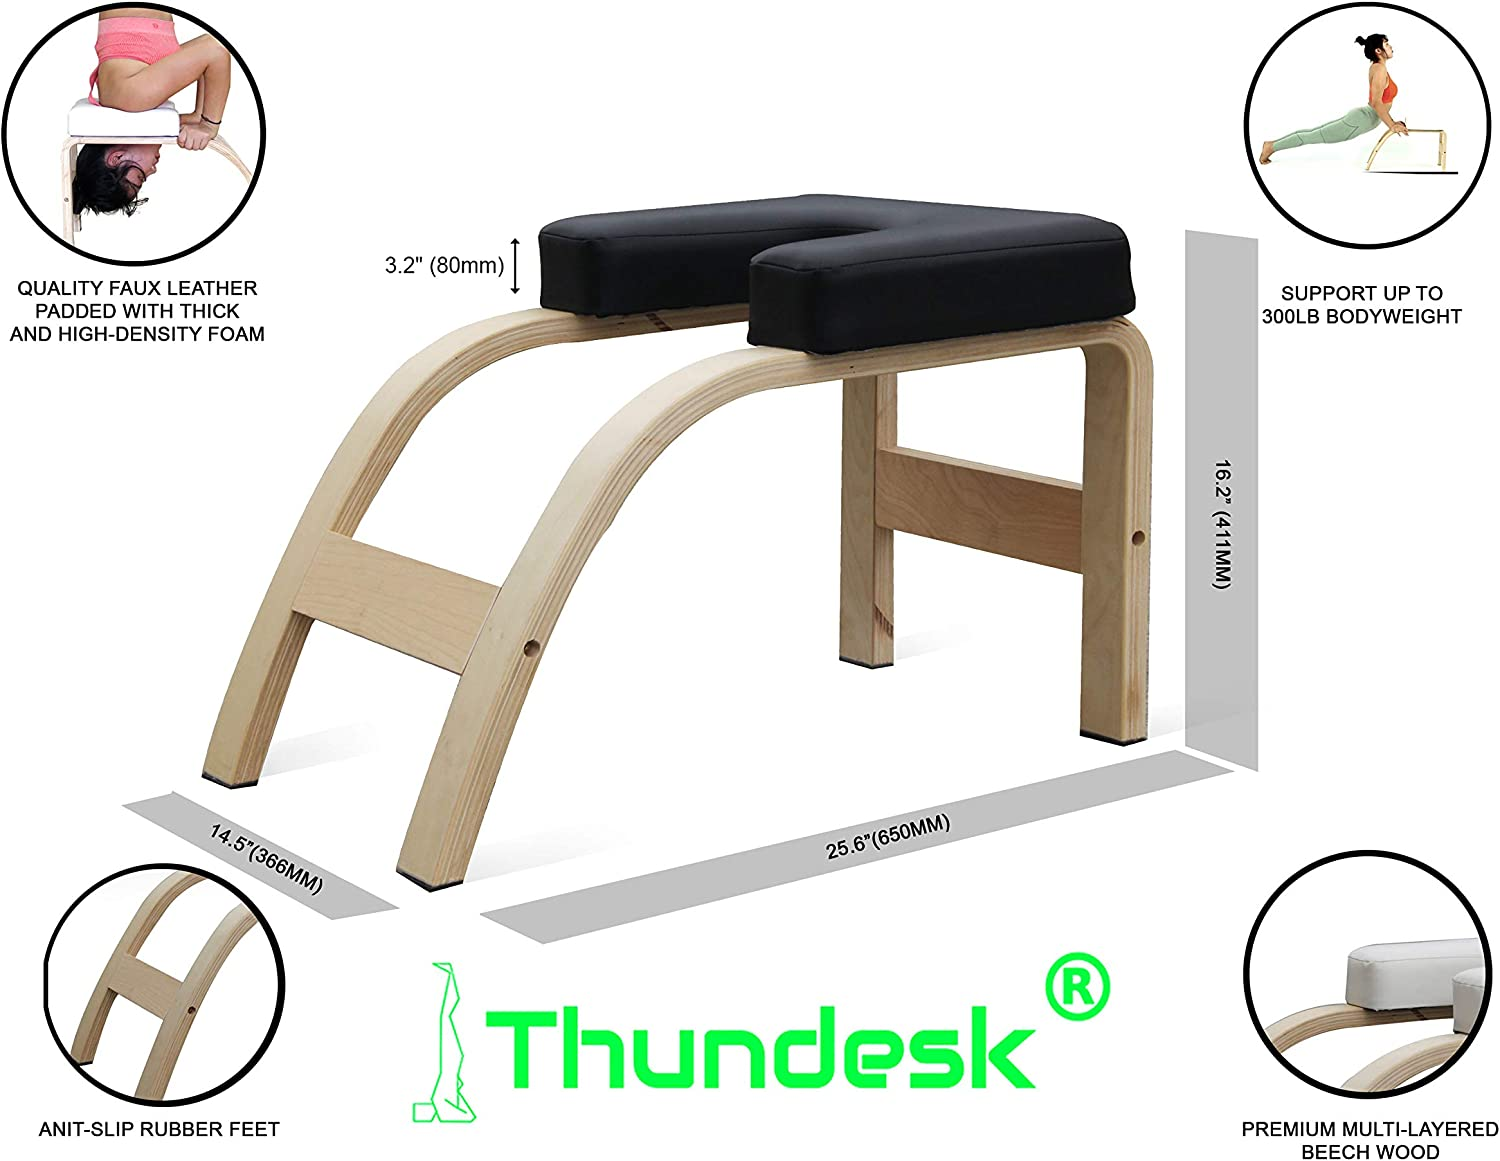 THUNDESK Yoga Inversion Bench Headstand Prop Upside Down Chair for Feet Up and Balance Training Core Strength Building Backbends Yoga Asana Practice ...